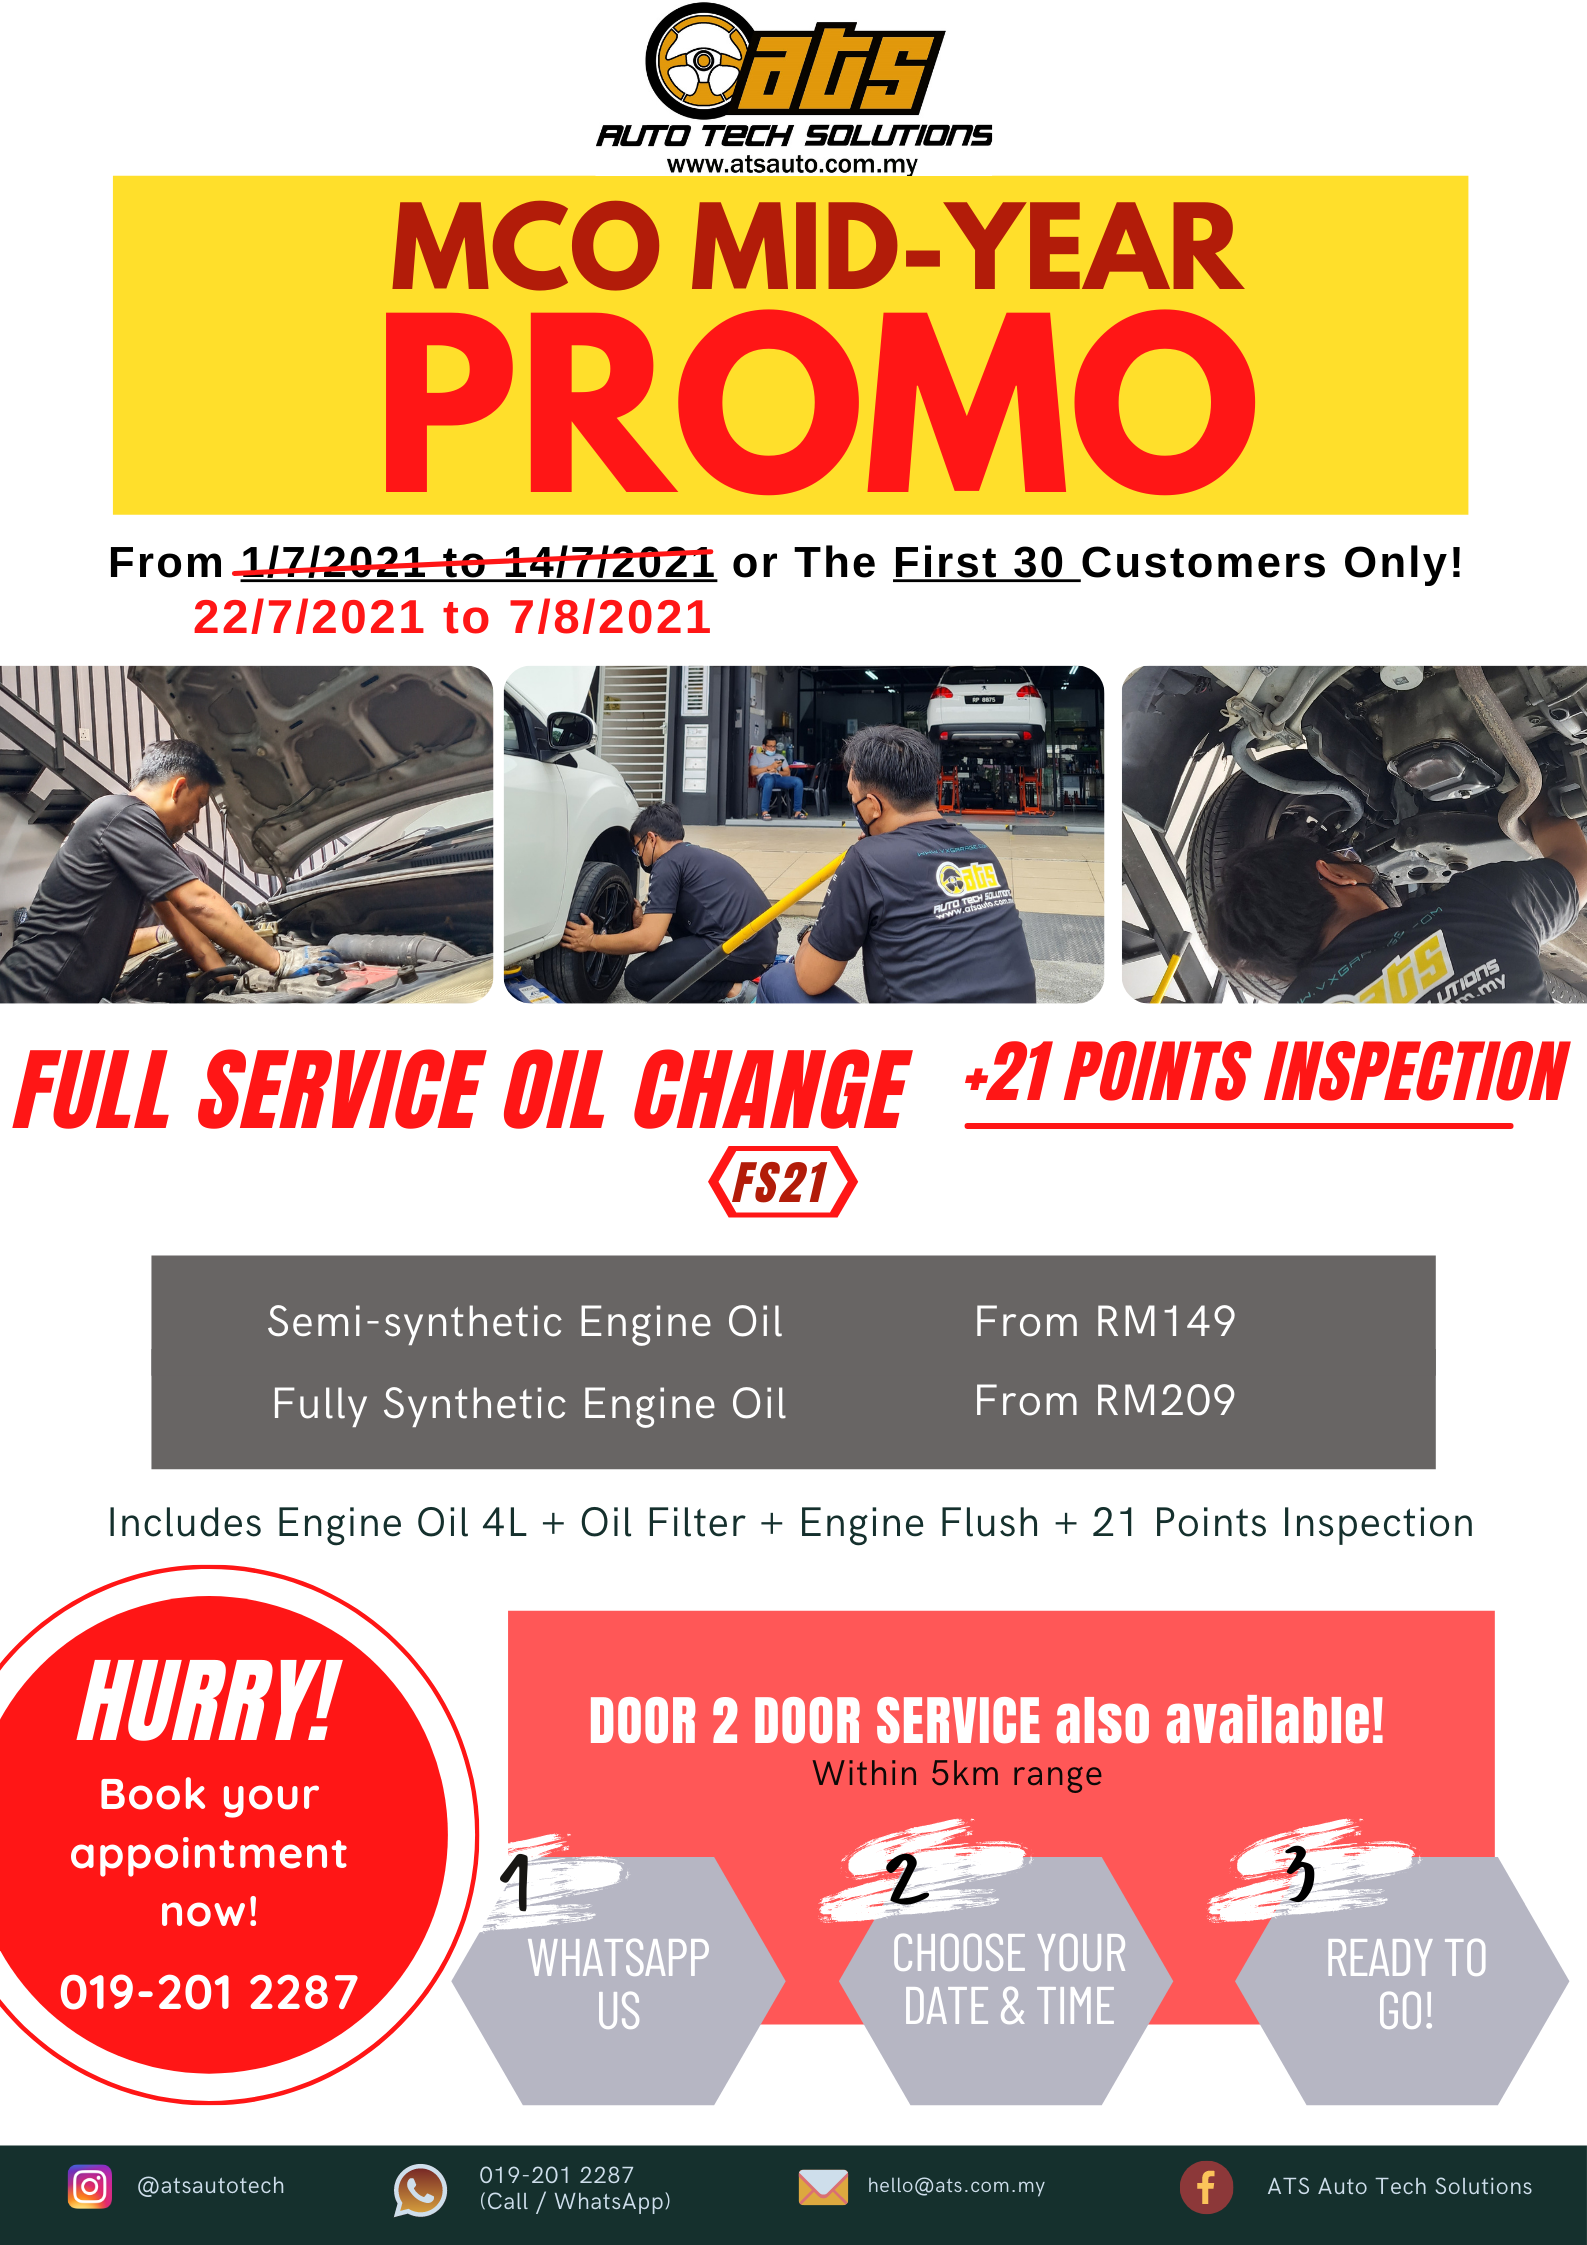 MCO MID-YEAR PROMO POSTER (4)